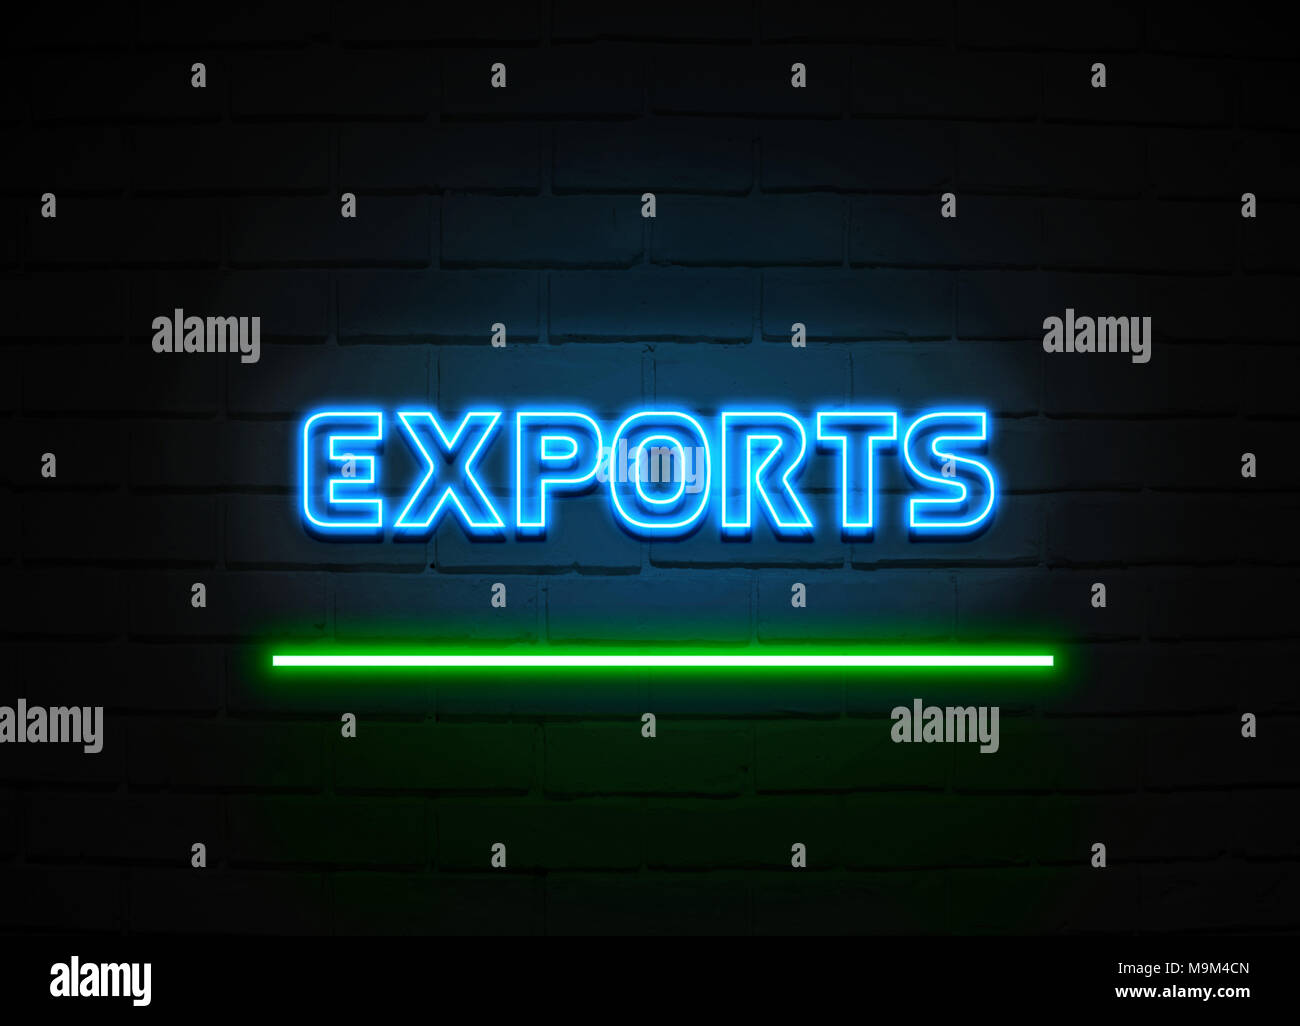 Exports neon sign - Glowing Neon Sign on brickwall wall - 3D rendered royalty free stock illustration. - Stock Image